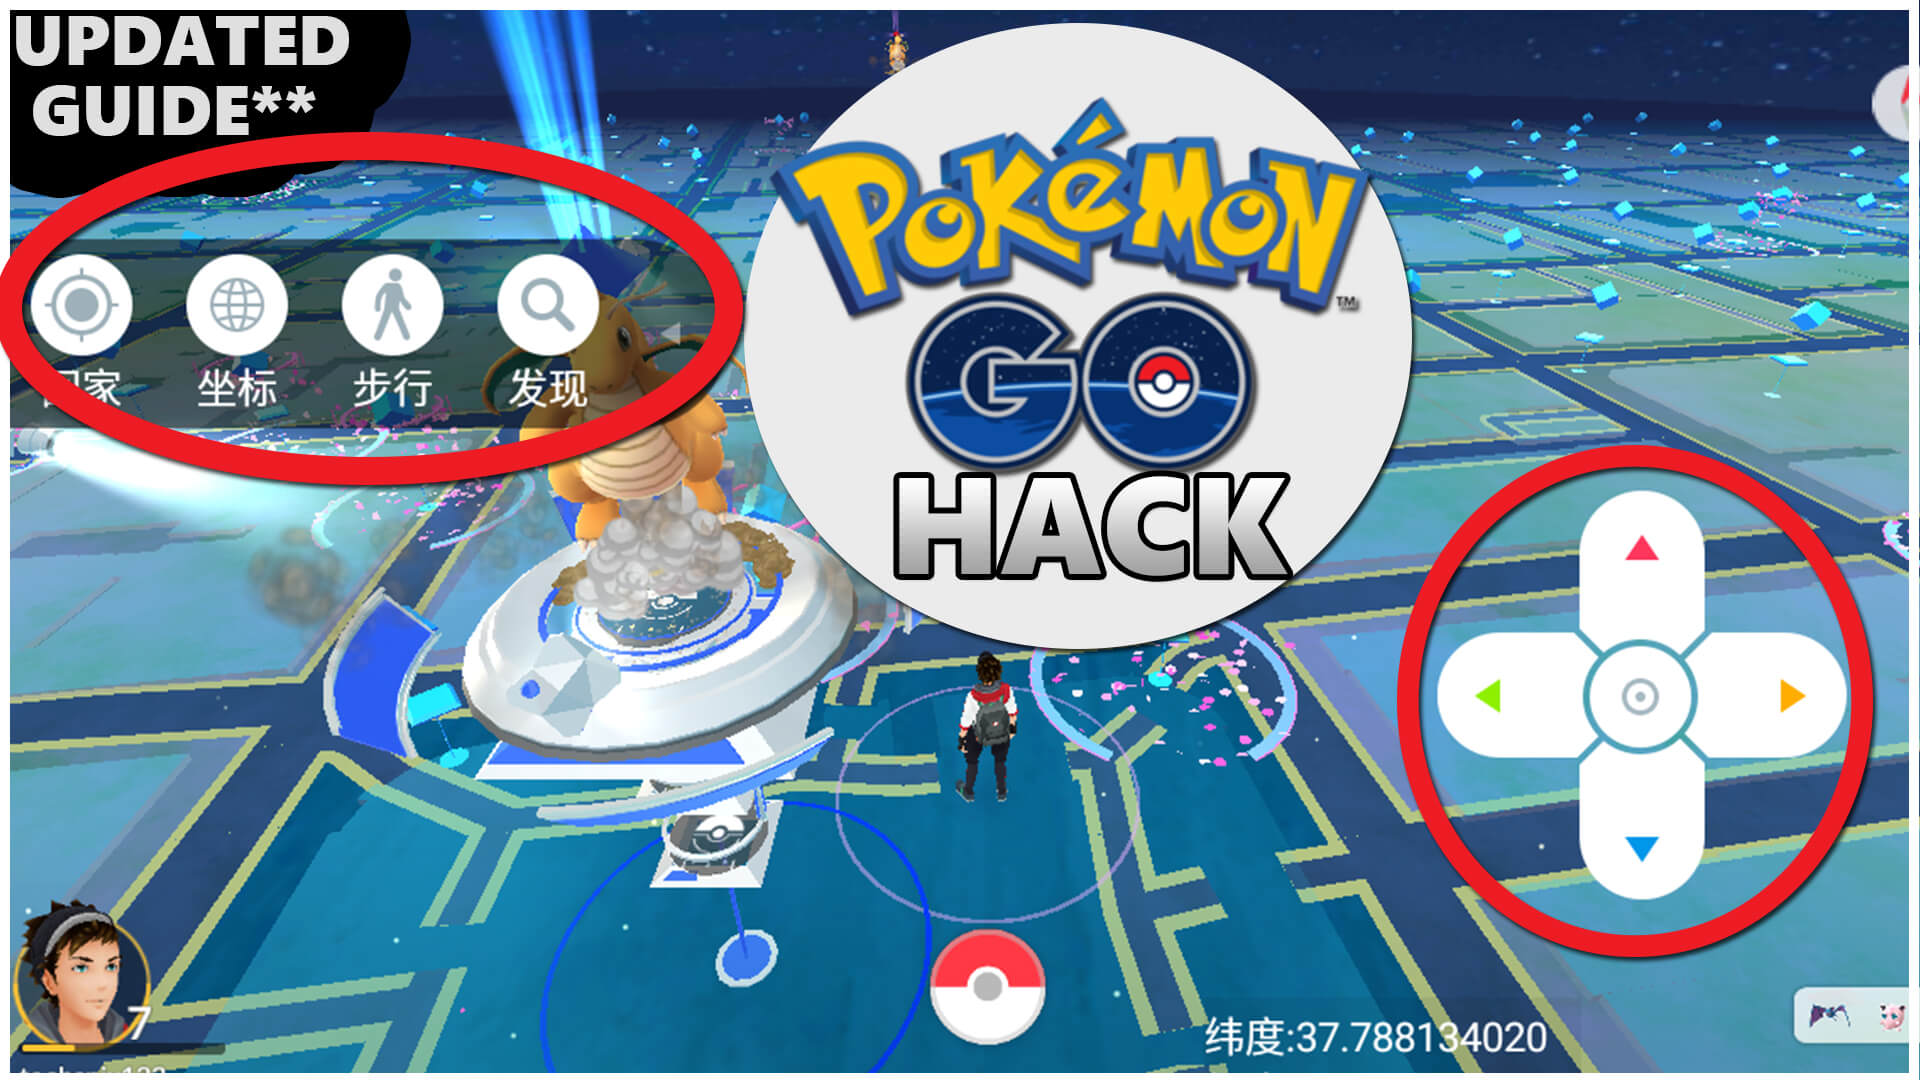 Pokemon GO Hack ANDROID No Root / Pokemon GO CHEAT : Joystick, Find Pokemons Easily, Change Location